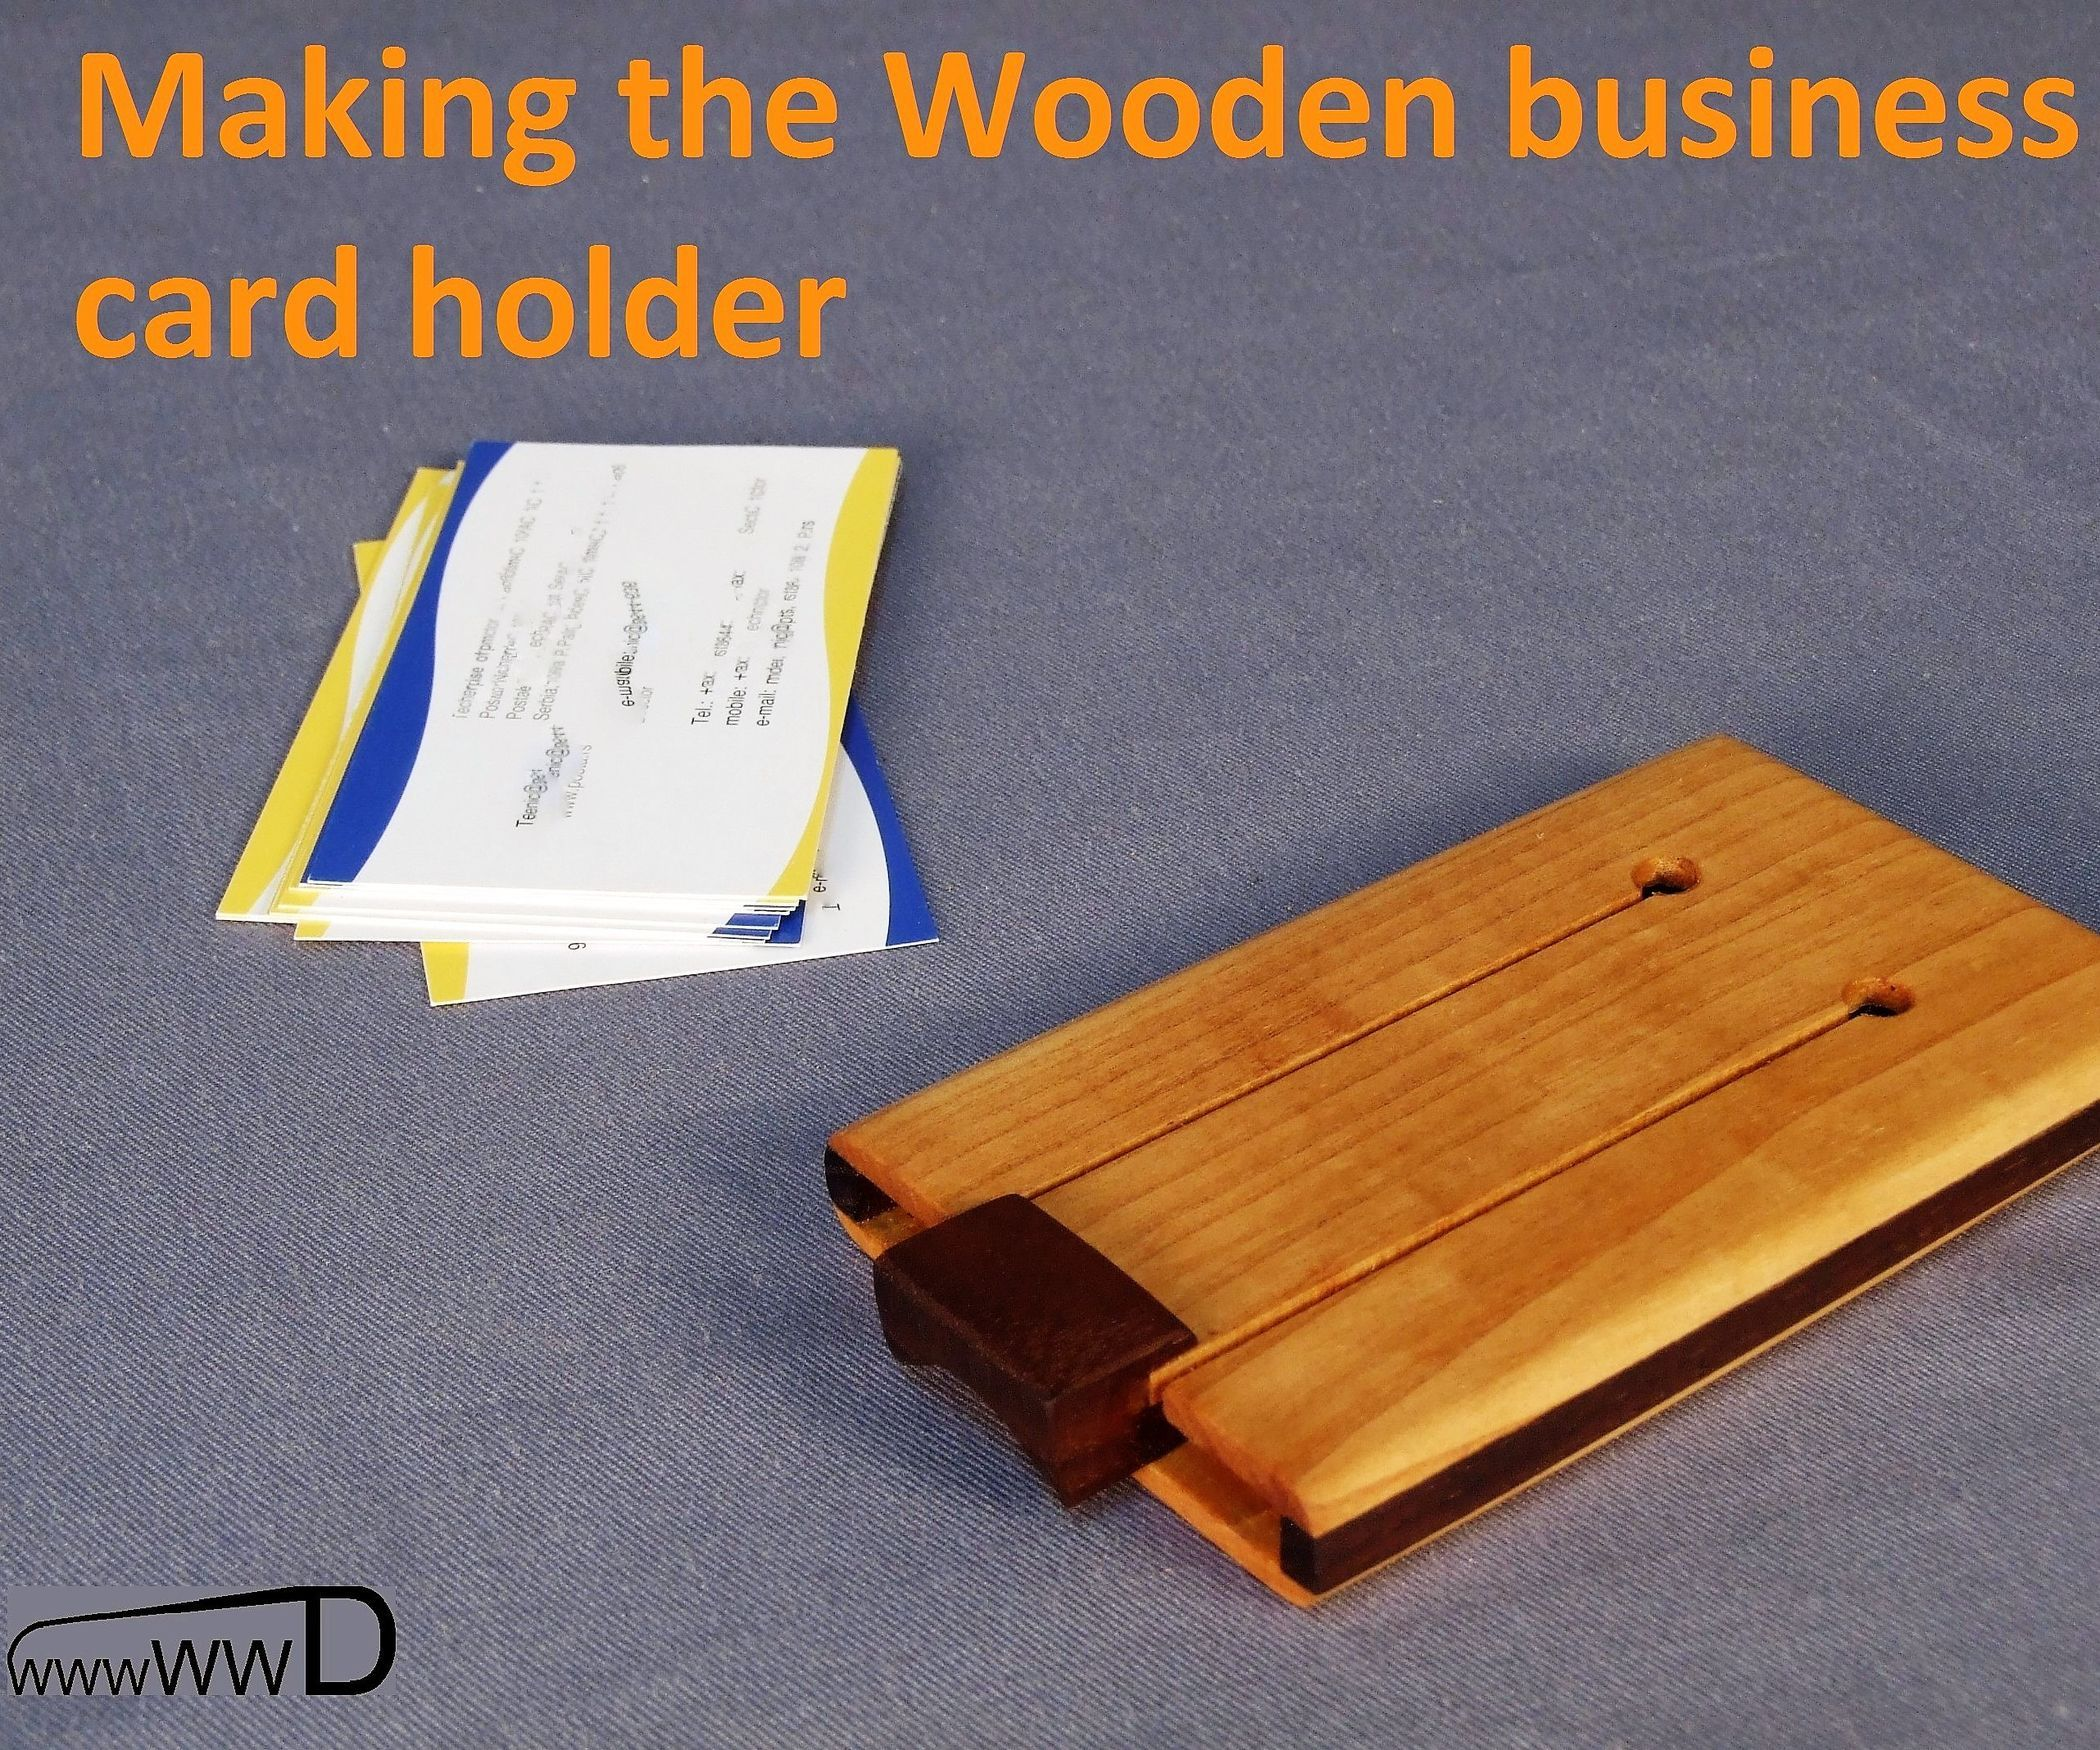 Wooden Business Card Holder | Business card holders, Business cards ...